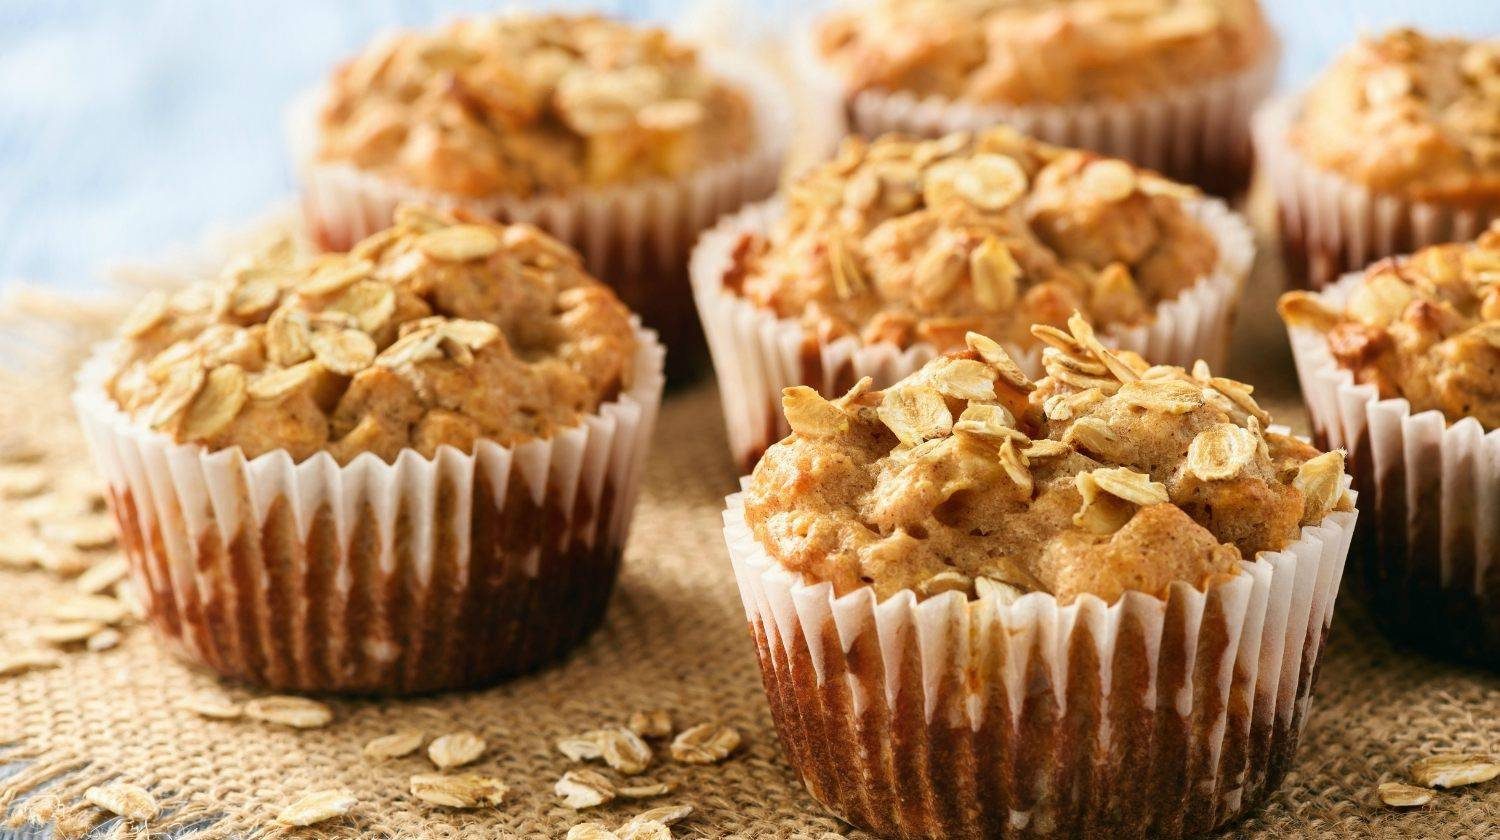 Featured | Oat muffins with apples and cinnamon | The Best Vegan Secret Chickpea Muffins